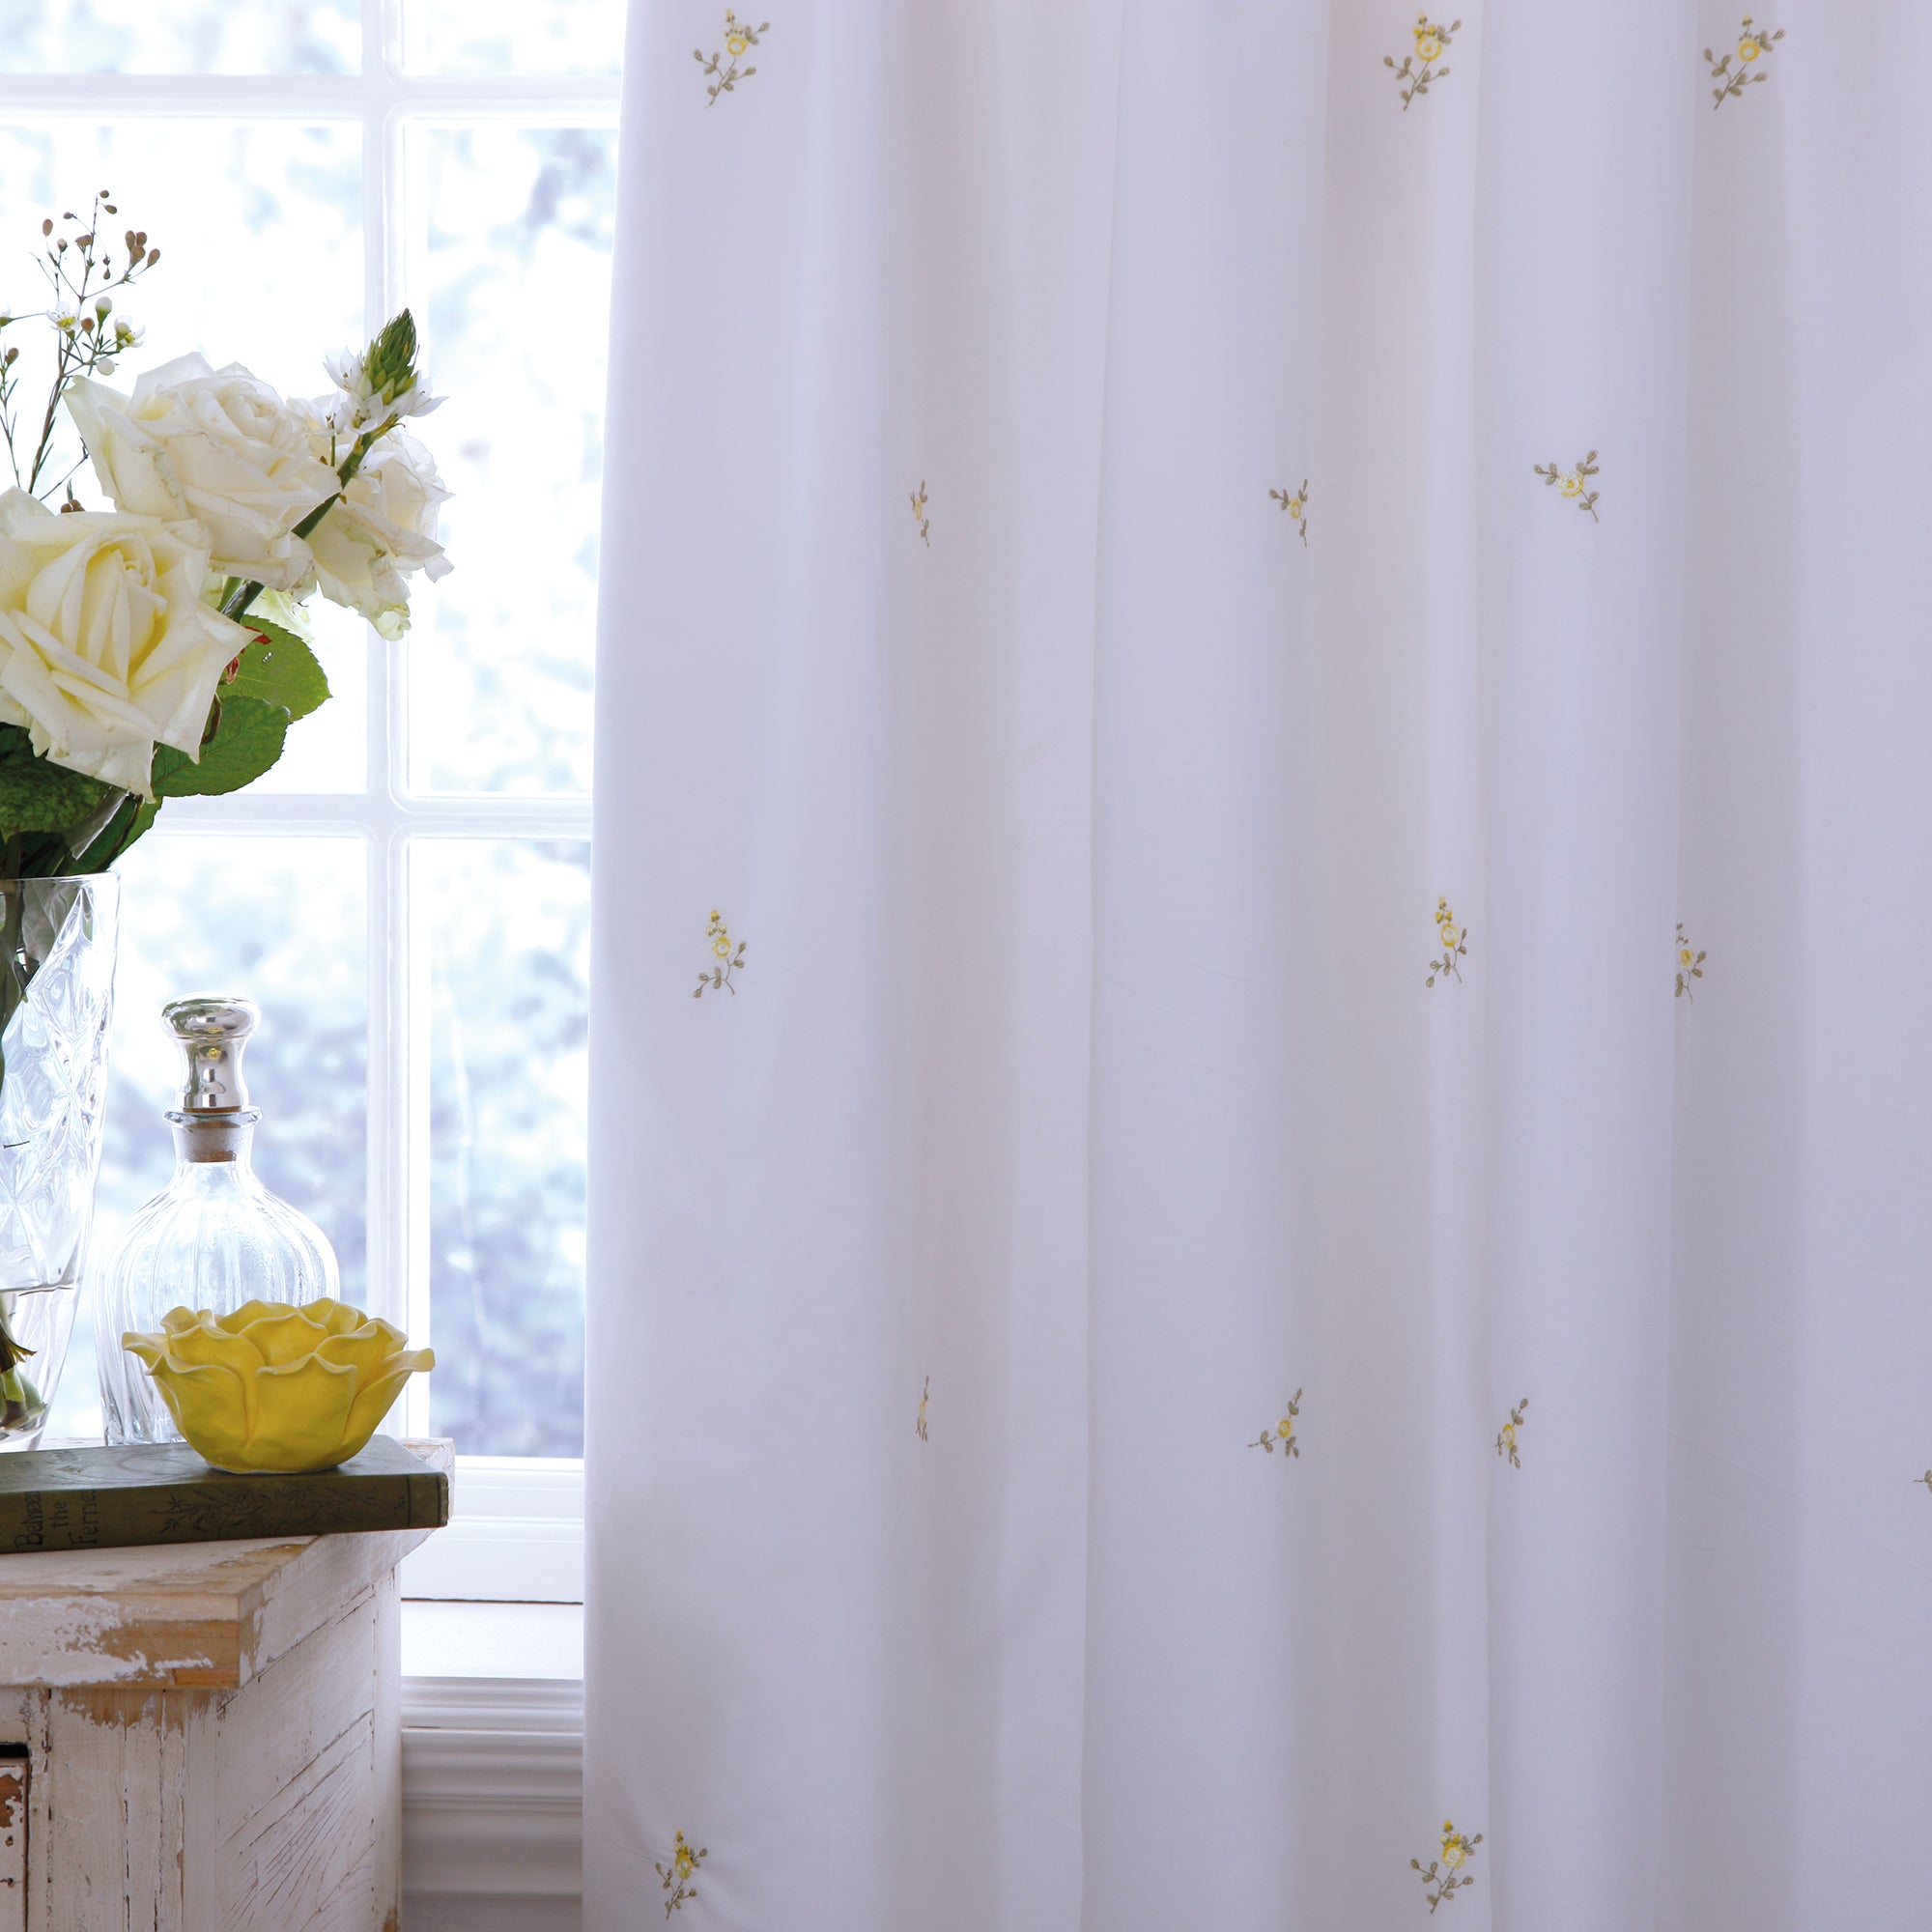 White Abby Rosebud Thermal Pencil Pleat Curtains